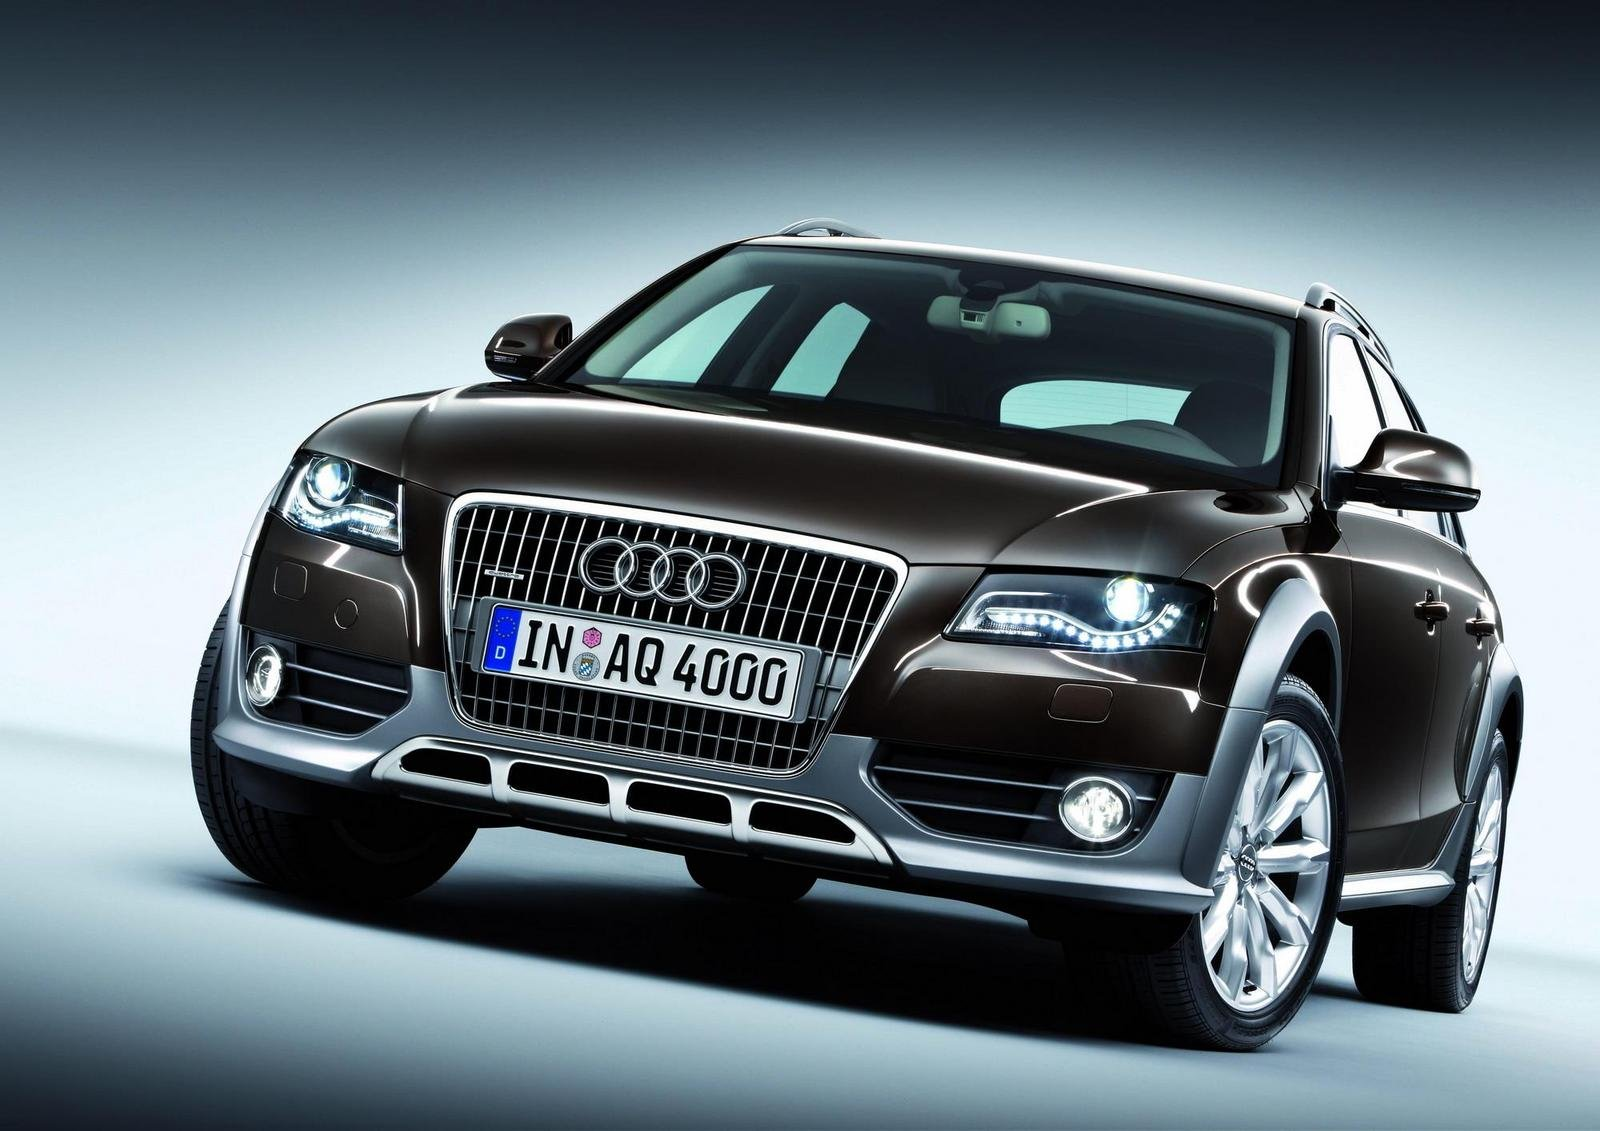 2009 audi a4 allroad quattro picture 291519 car review. Black Bedroom Furniture Sets. Home Design Ideas